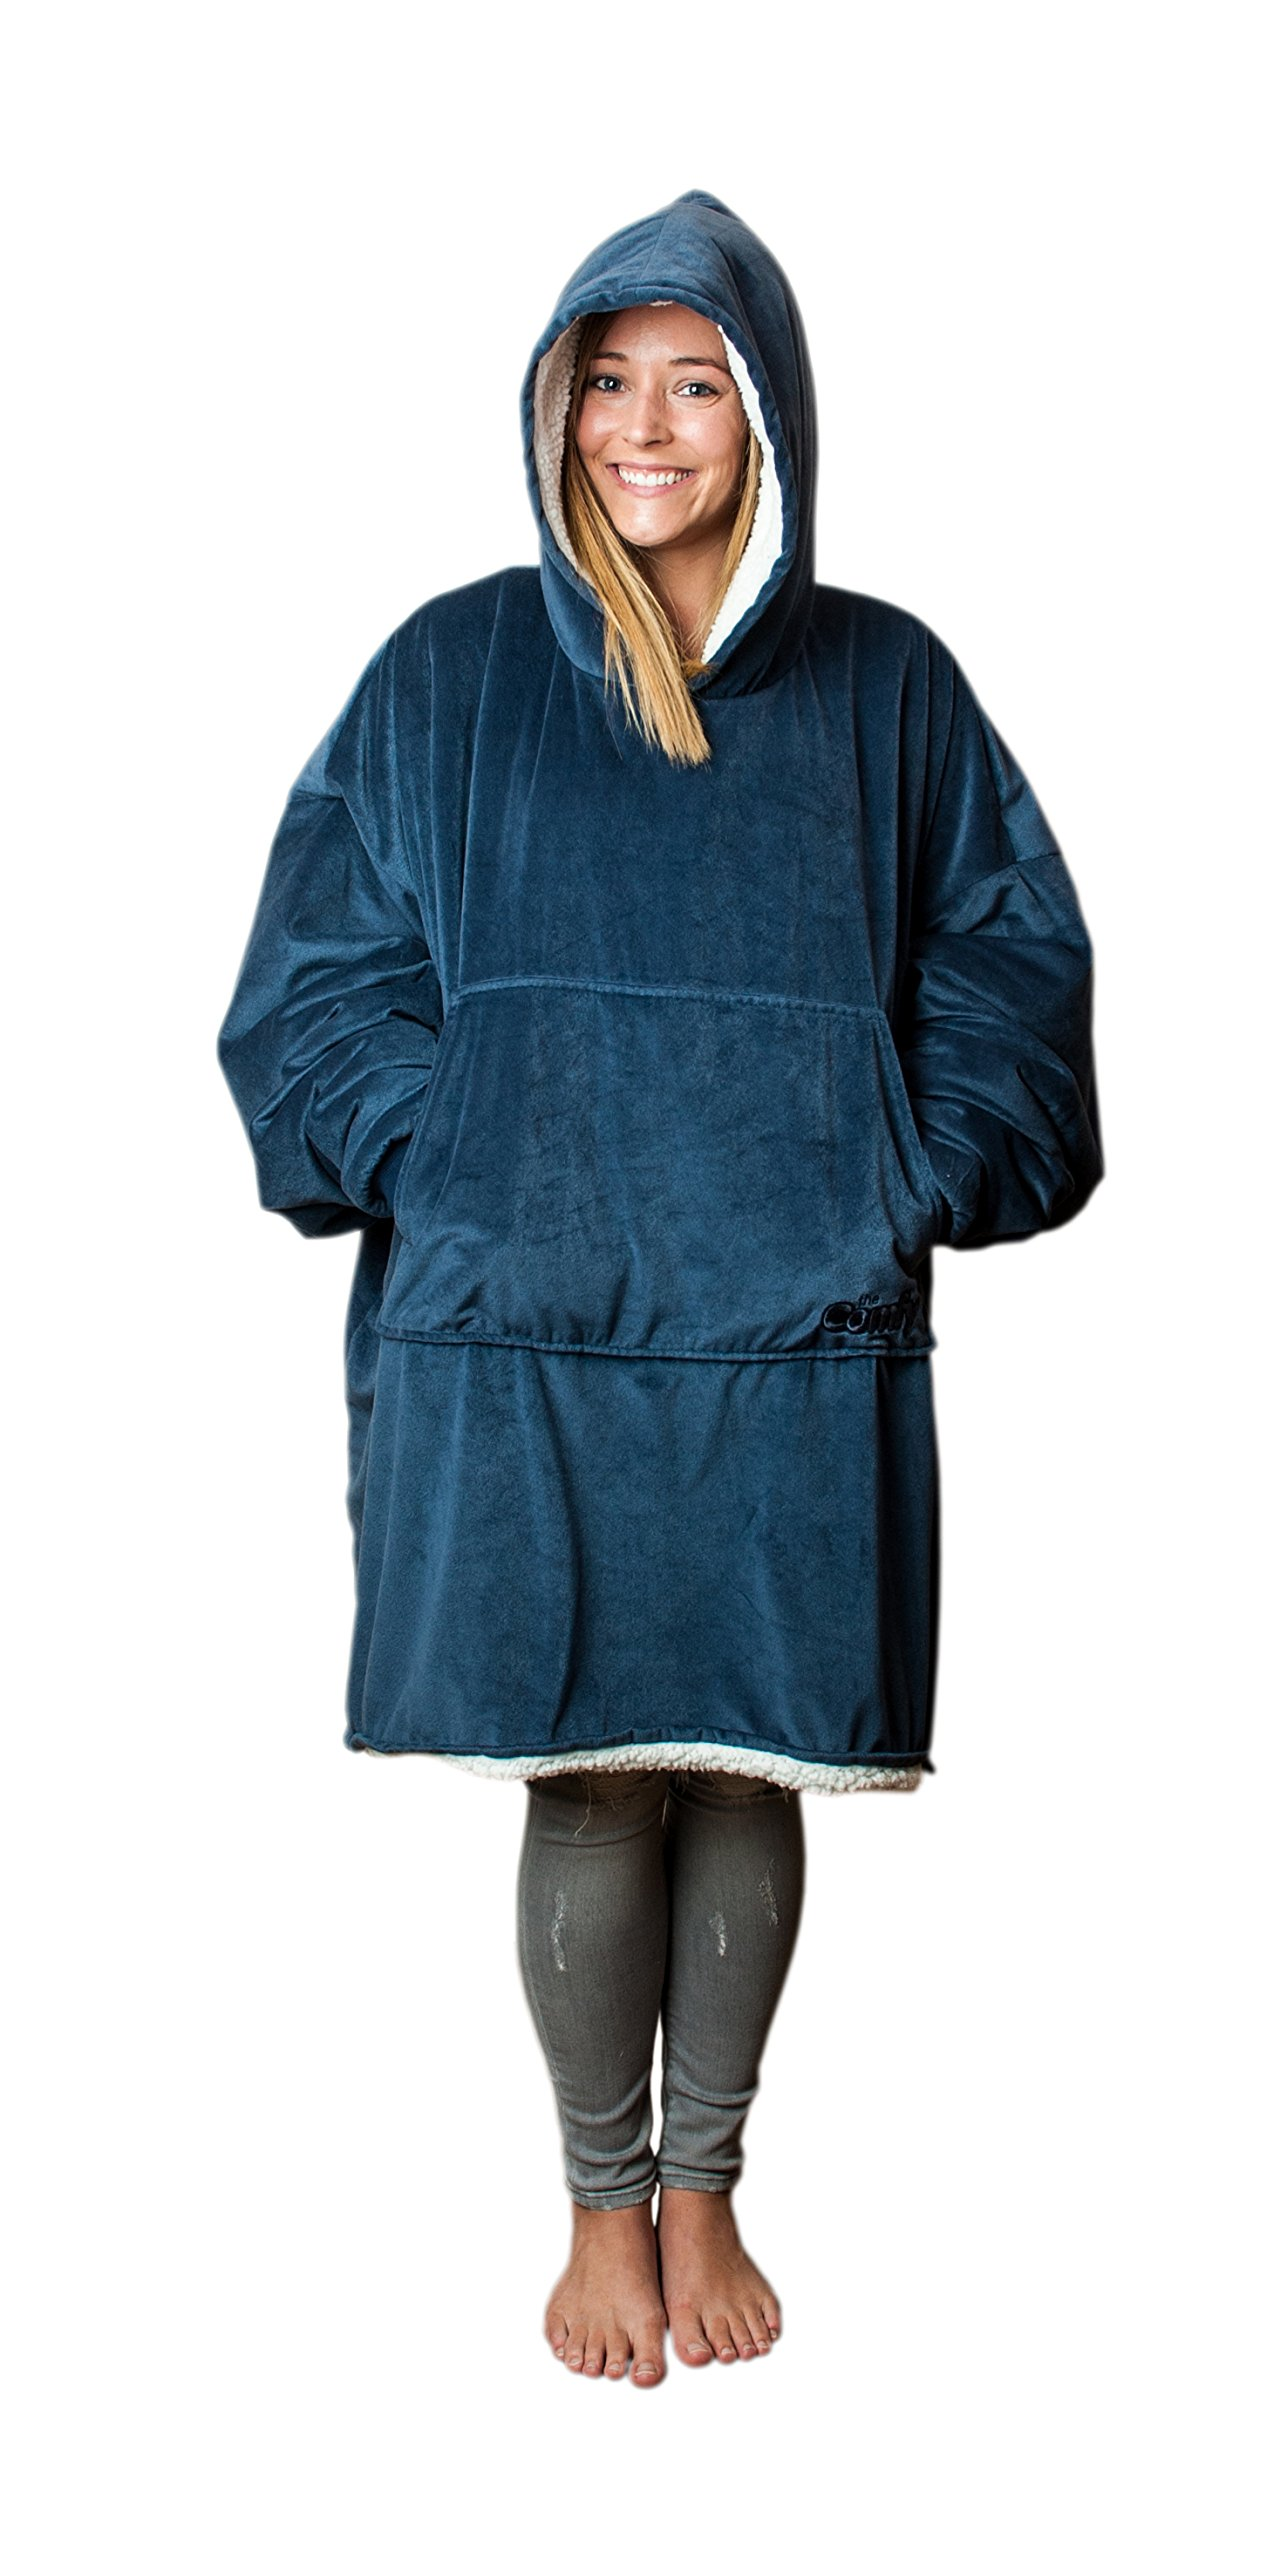 The Comfy, The Blanket… That's a Sweatshirt, One Size Fits Most, Soft Snuggly and Comfortable Blanket Sweatshirt Originally Featured on Shark Tank, Blue Color by The Comfy